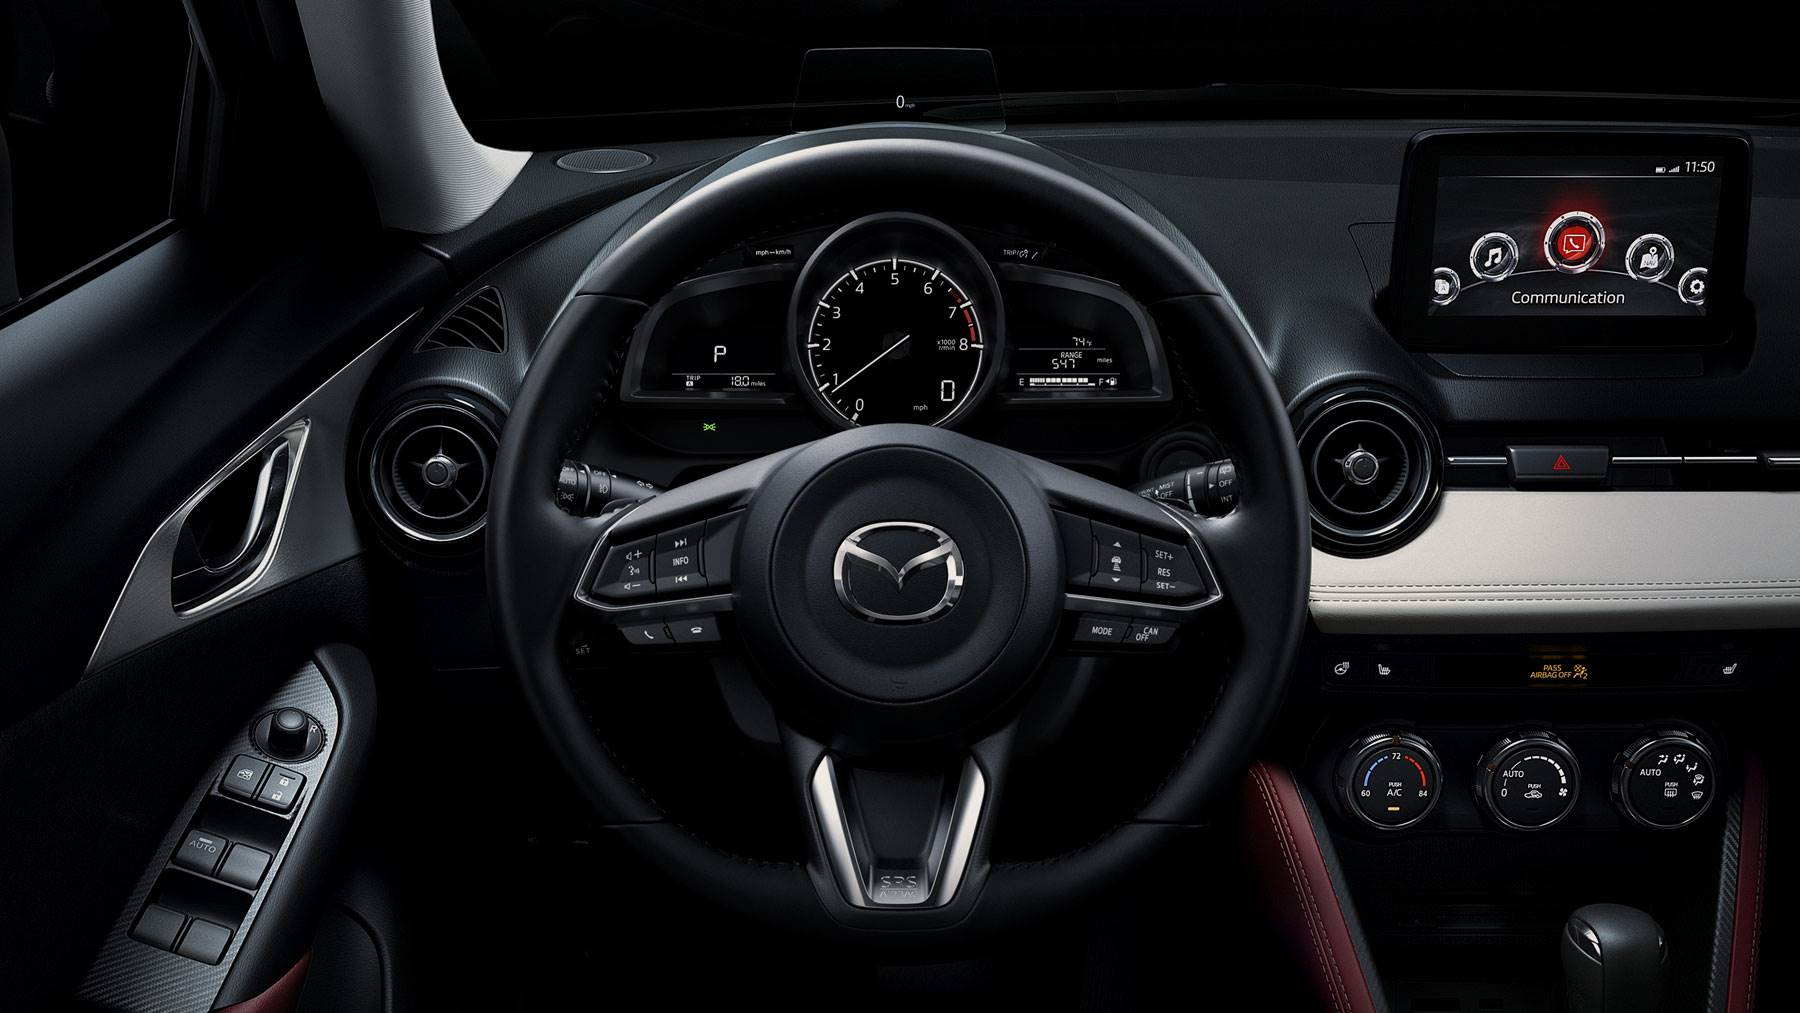 2018 Mazda CX-3 Digital Cluster